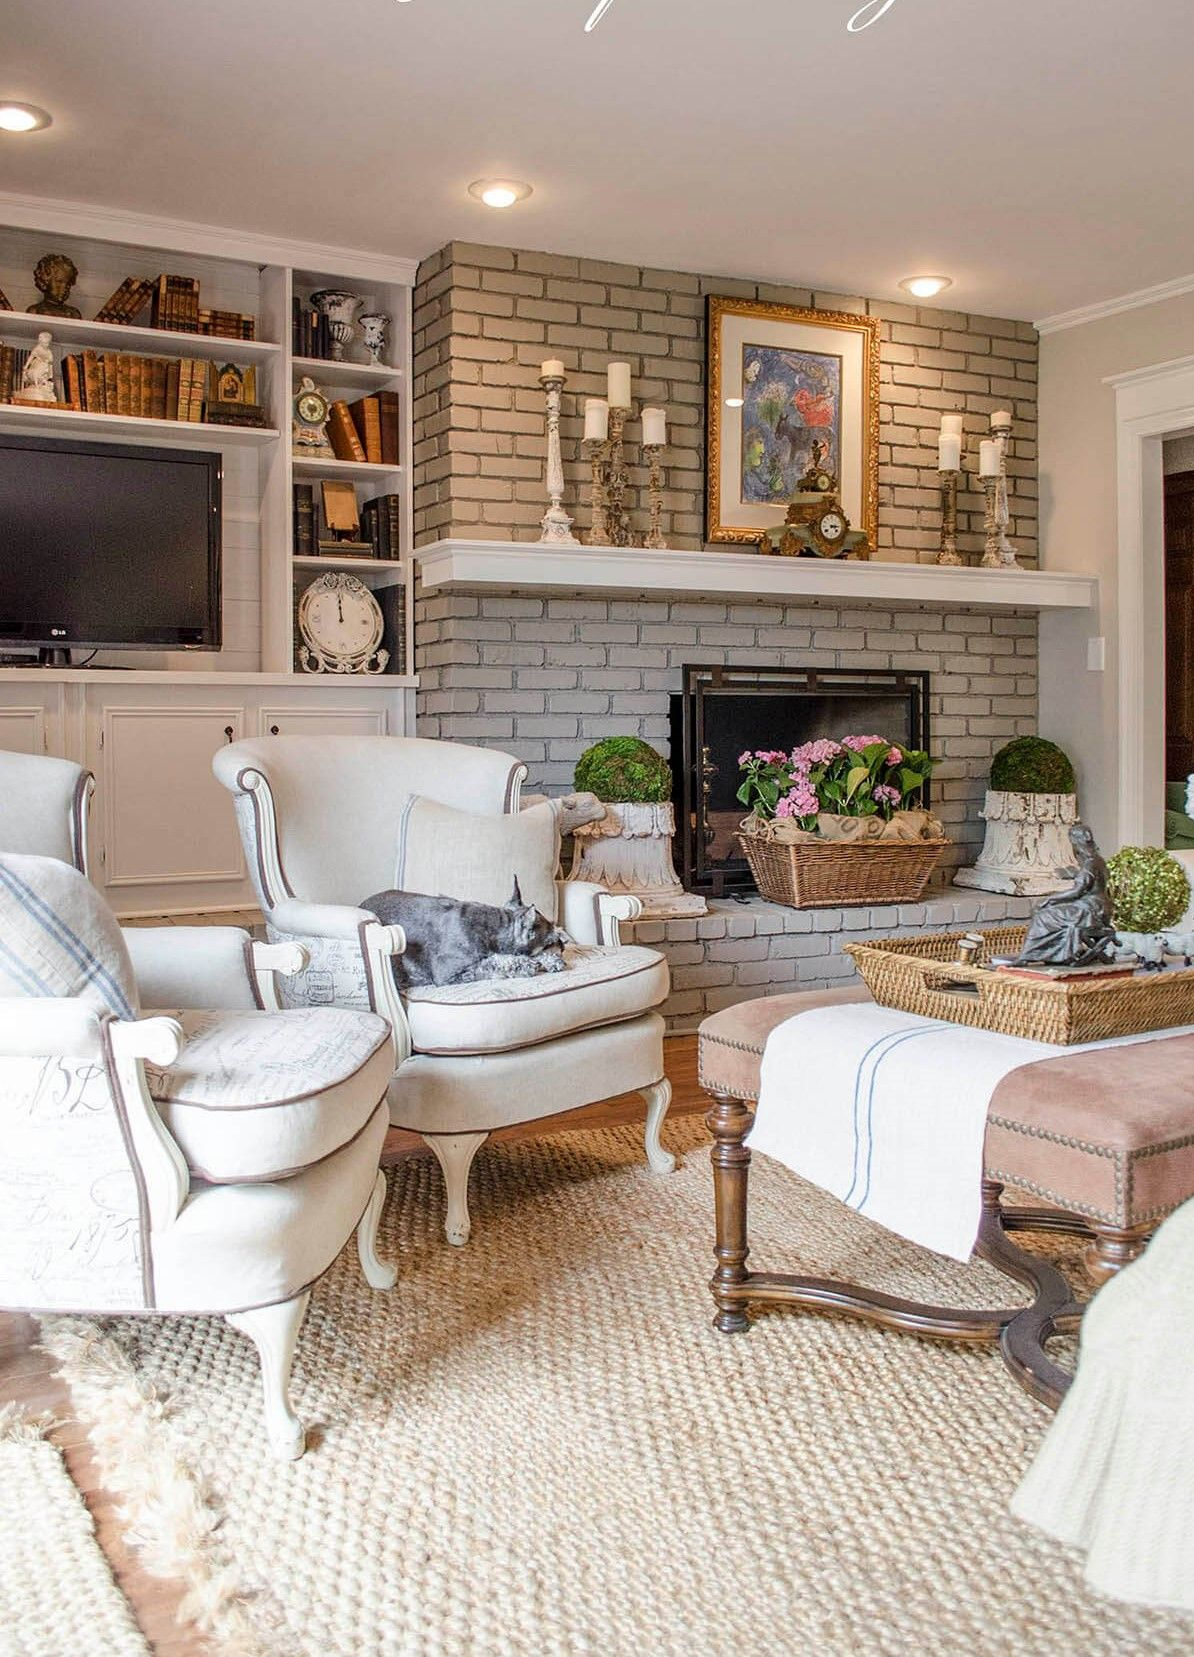 25 Cosy Modern Rustic Decor Designs for Living Room in ...